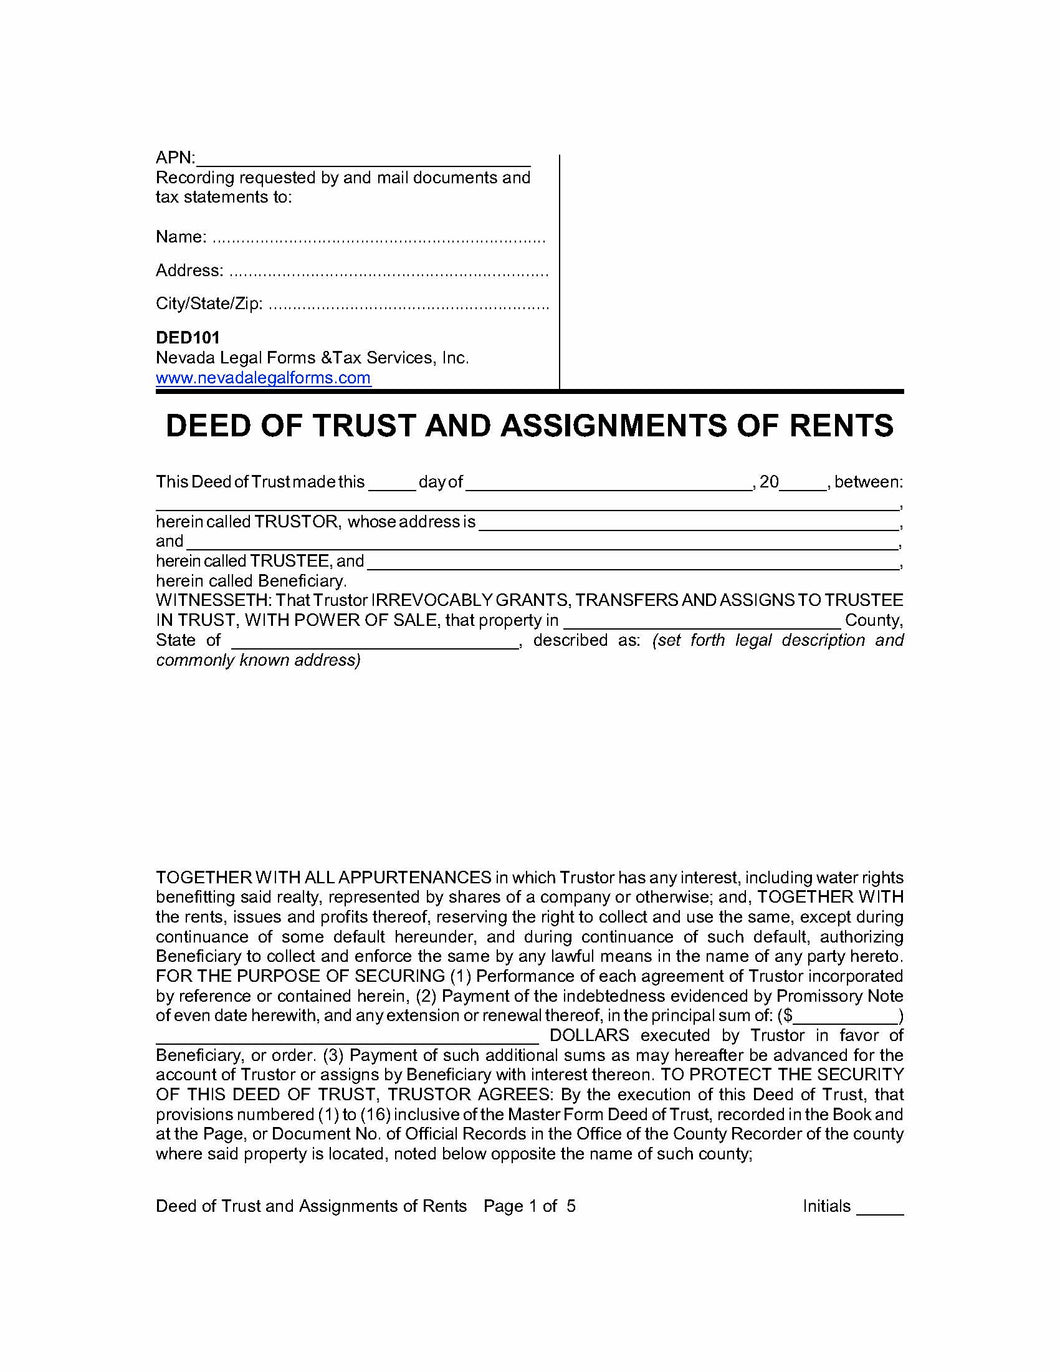 Deed of Trust and Assignments of Rents